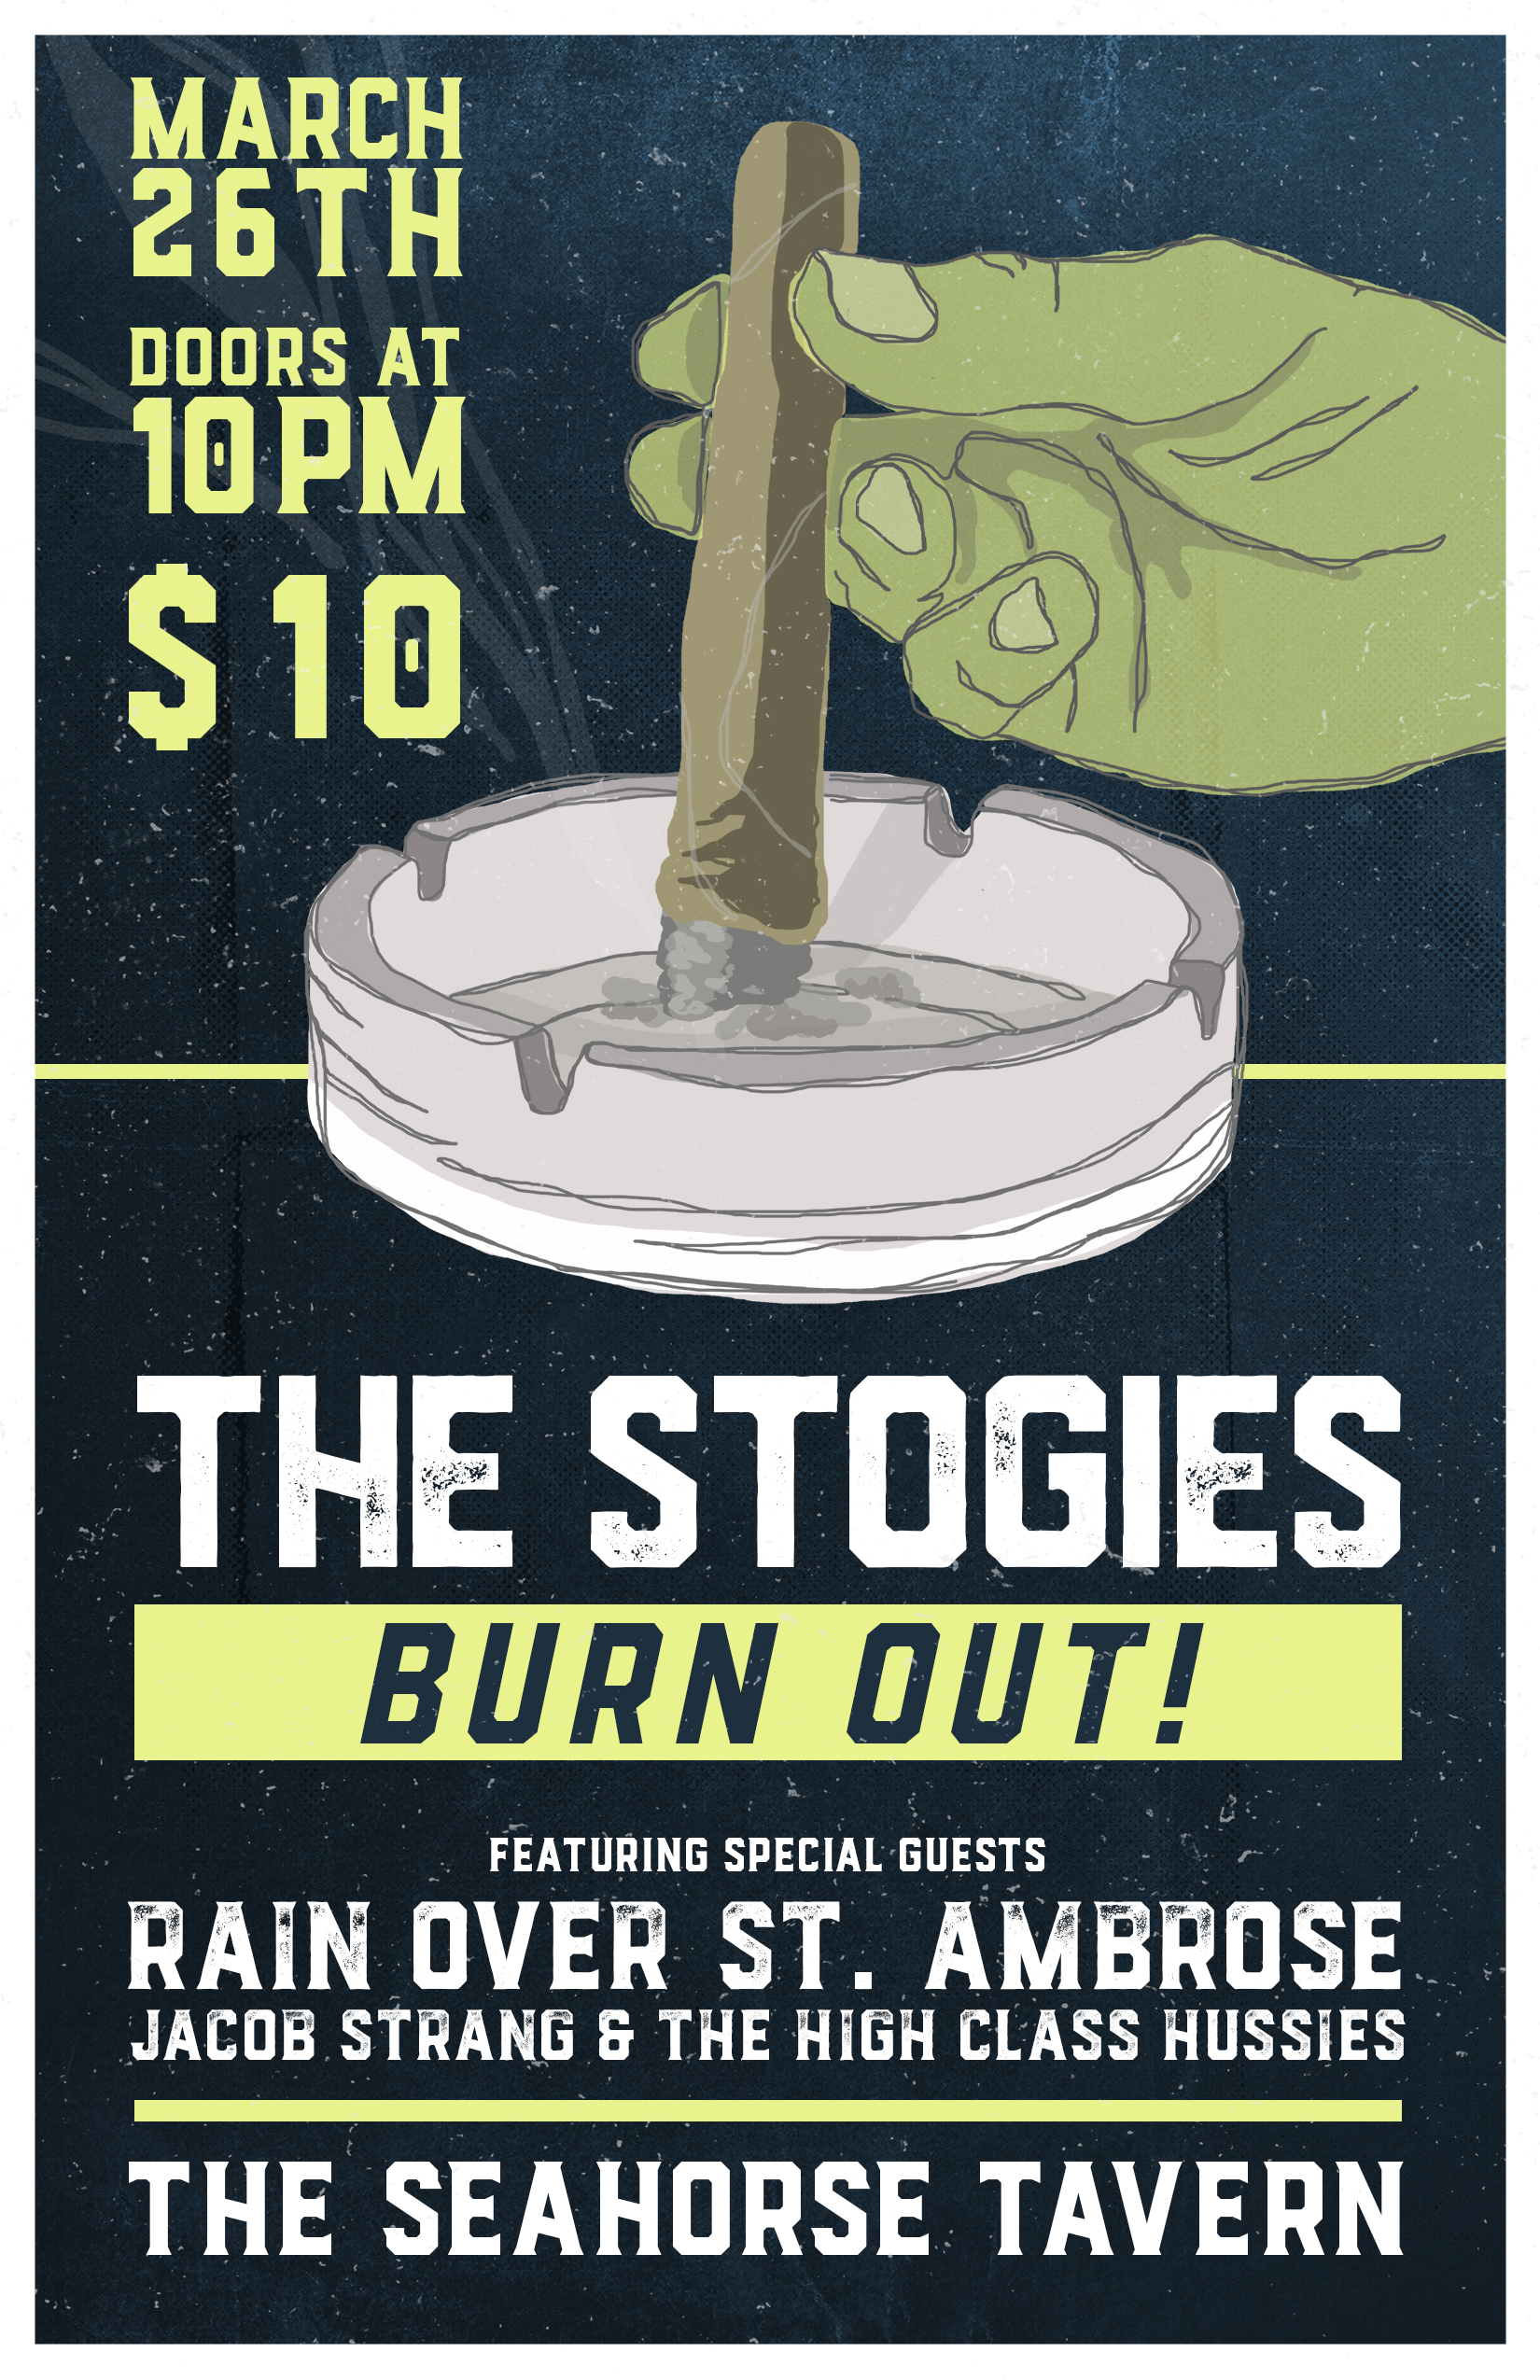 Stogies Burn Out Poster Web.jpg